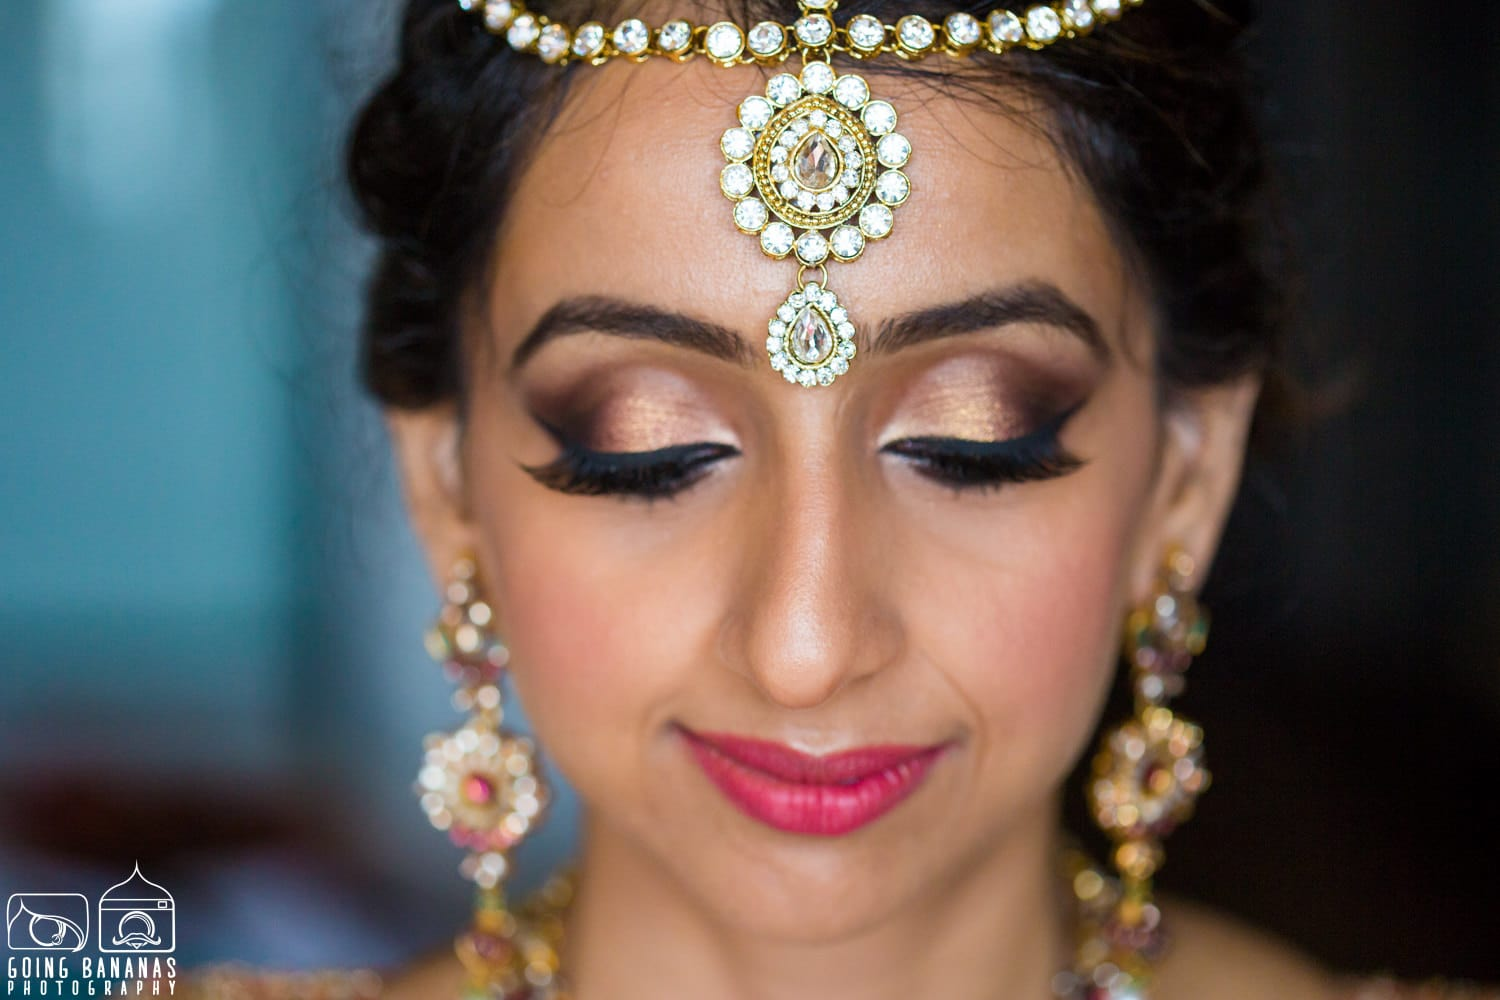 the bridal makeup!:manyavar, going bananas photography, makeovers by sukanya, design tuk tuk